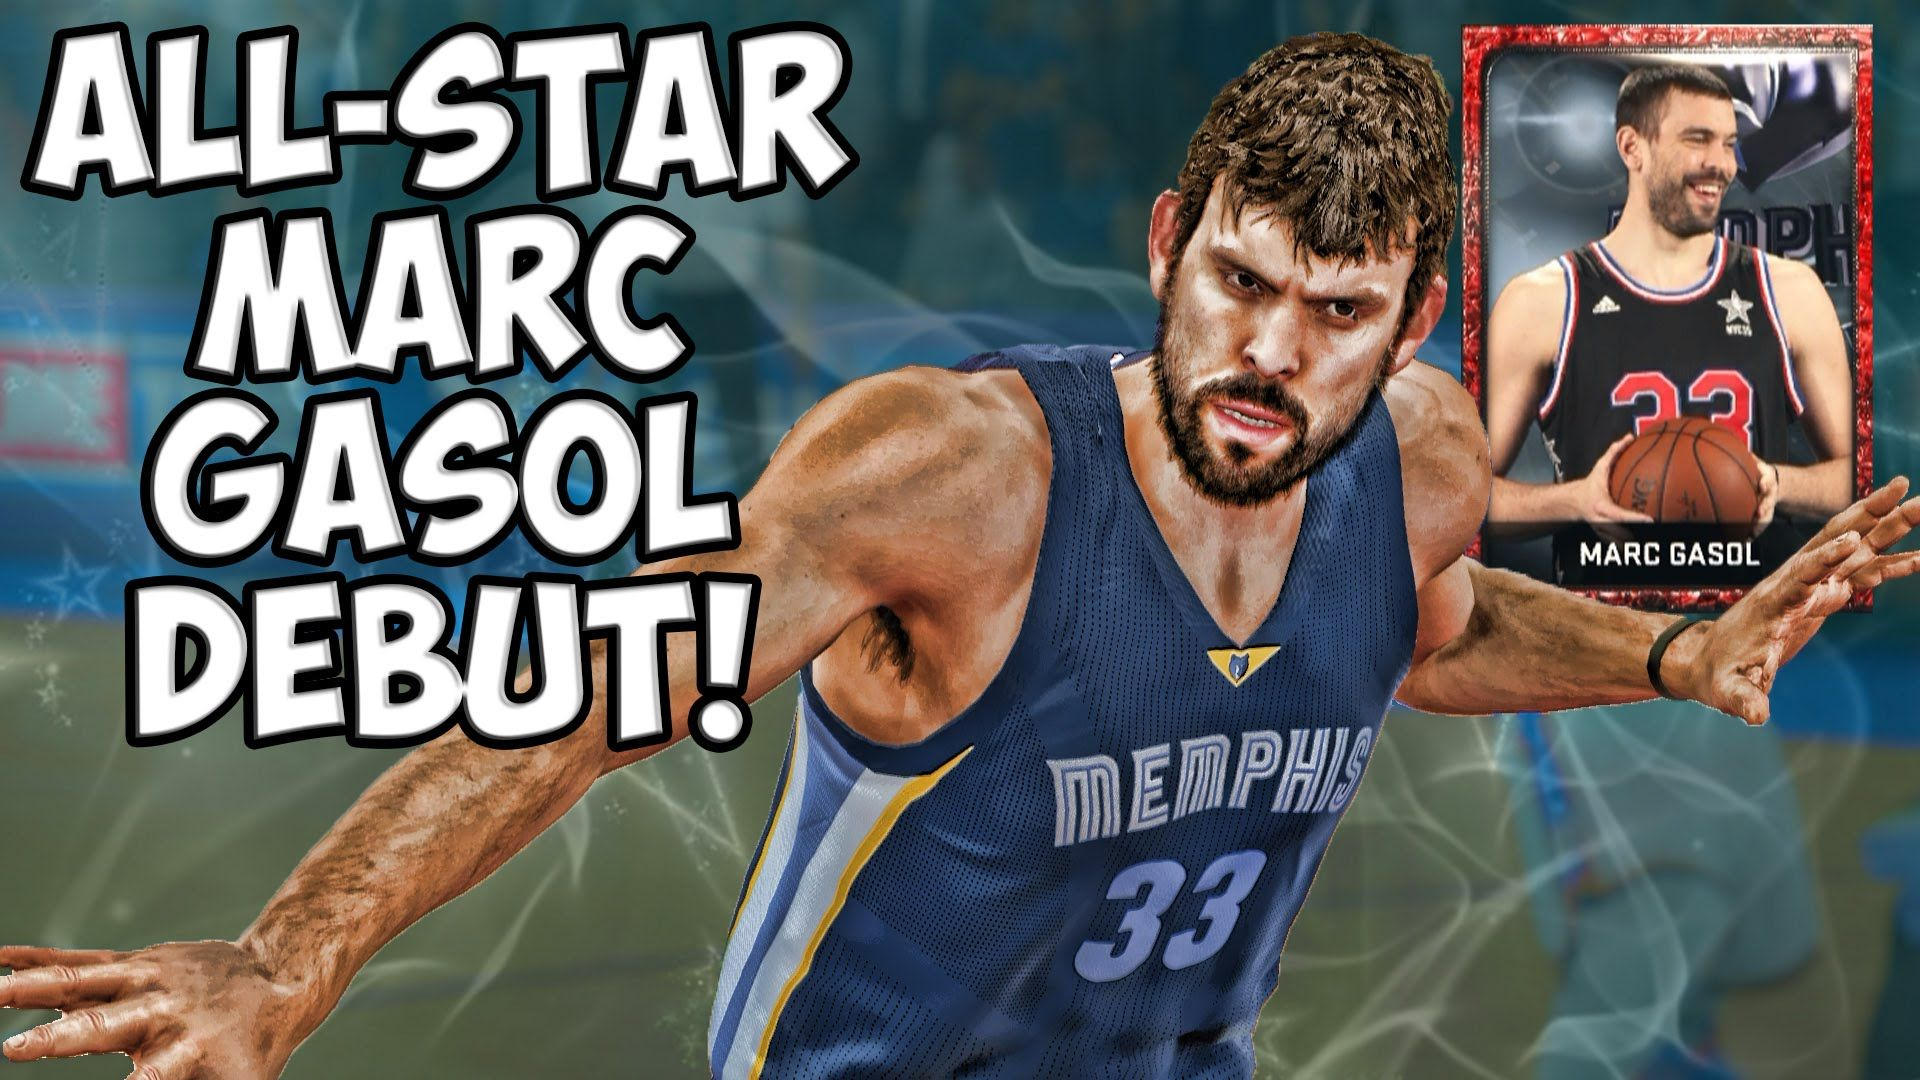 ccbb948c3721 NBA 2K15 MyTeam Gameplay - All-Star Marc Gasol vs Craziest Lineup Ever!